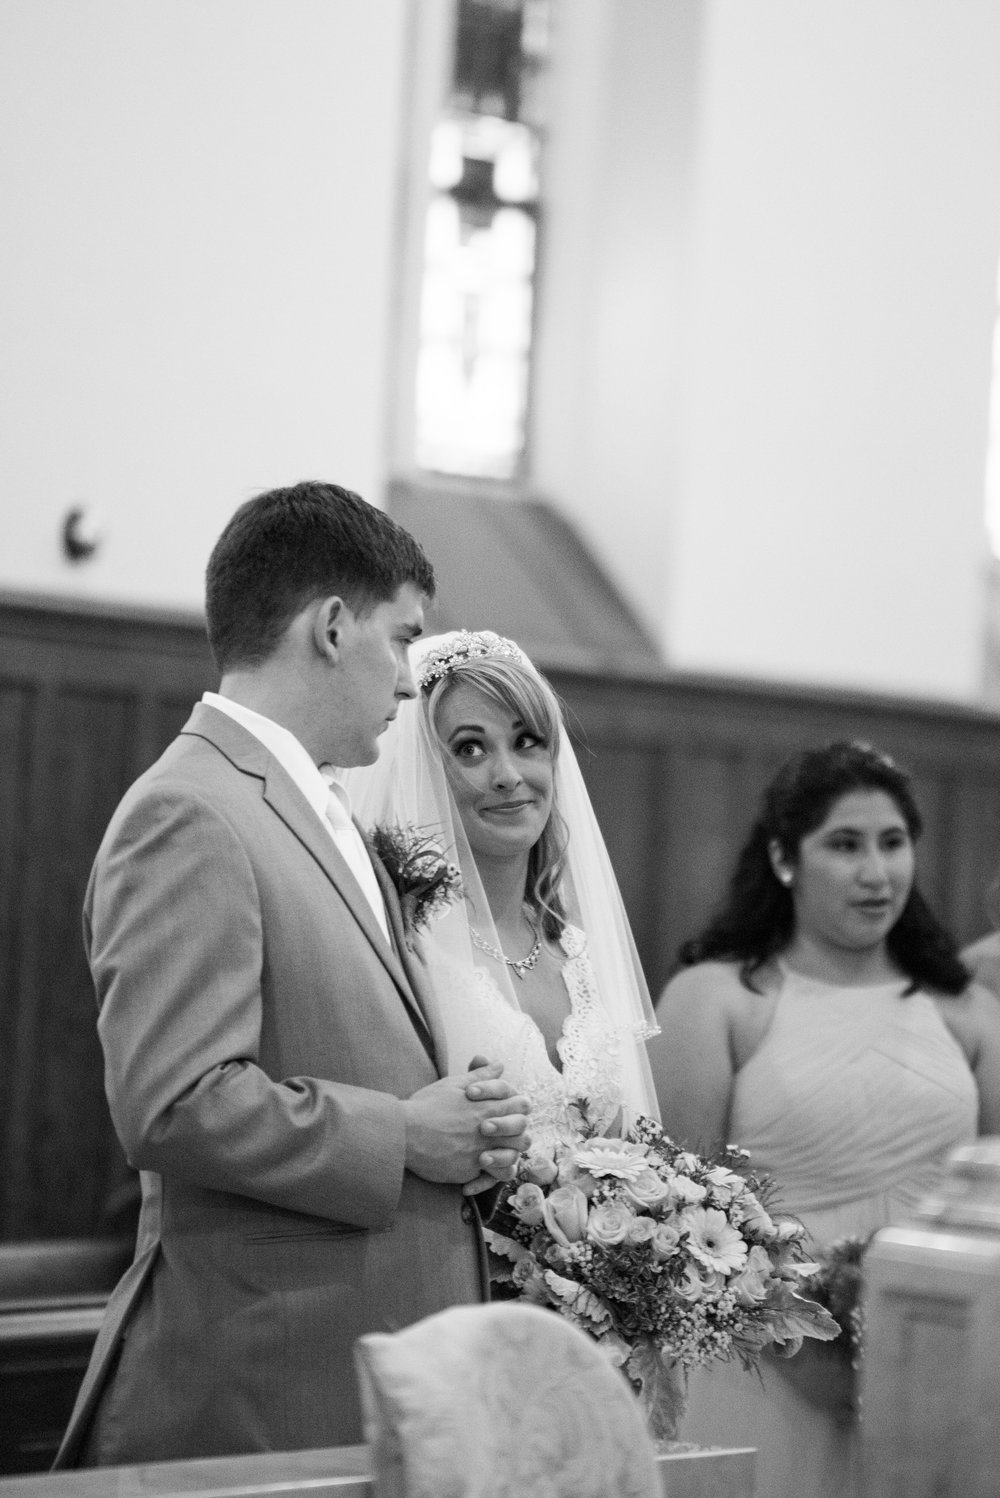 MeadowlarkGardensWedding-Ashley&Kevin-Ceremony-41.jpg